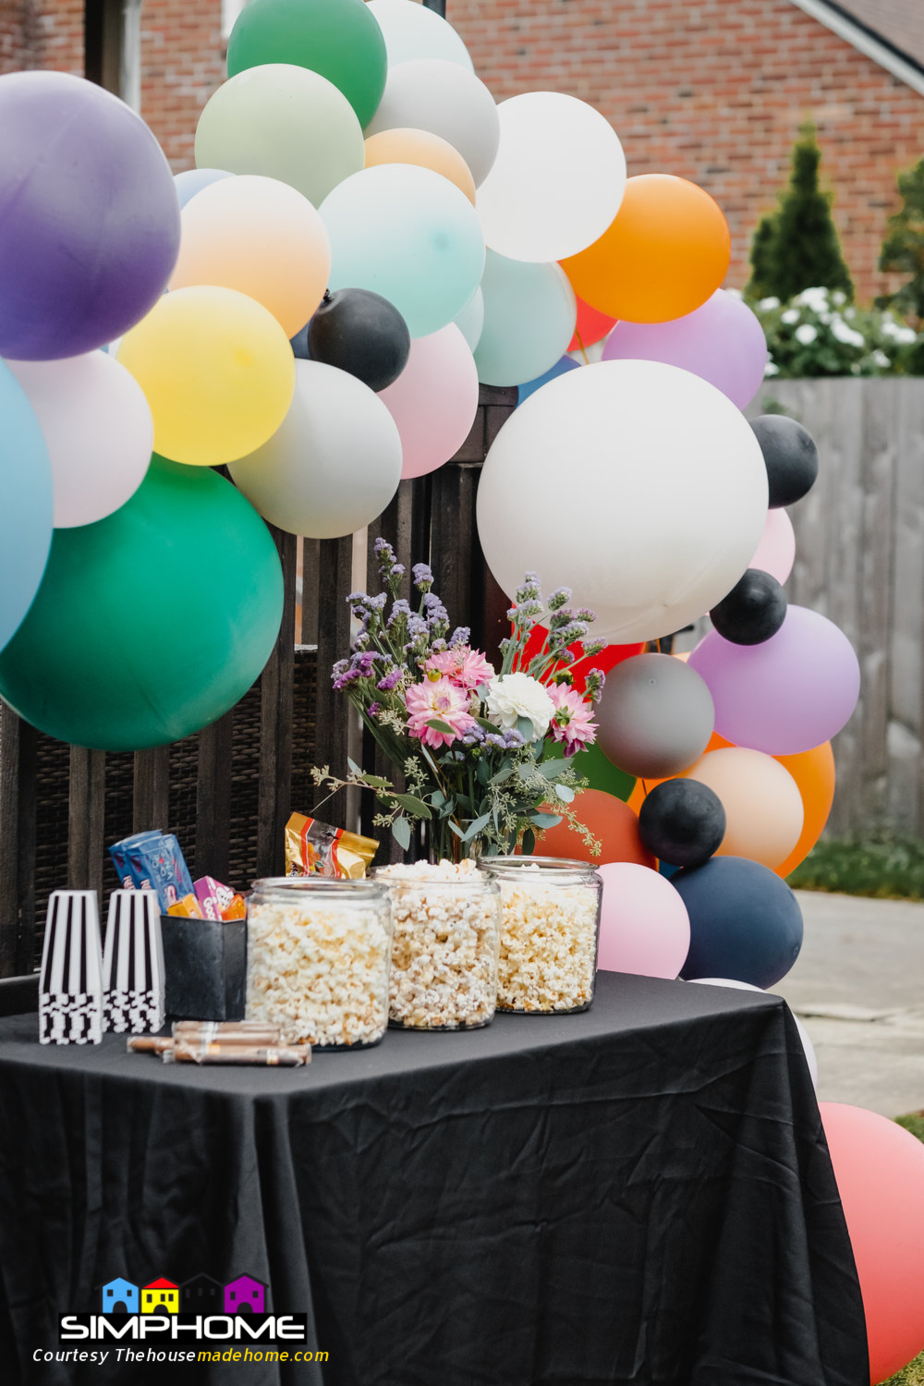 7.Decorate with Balloons in backyard party via Simphome.com